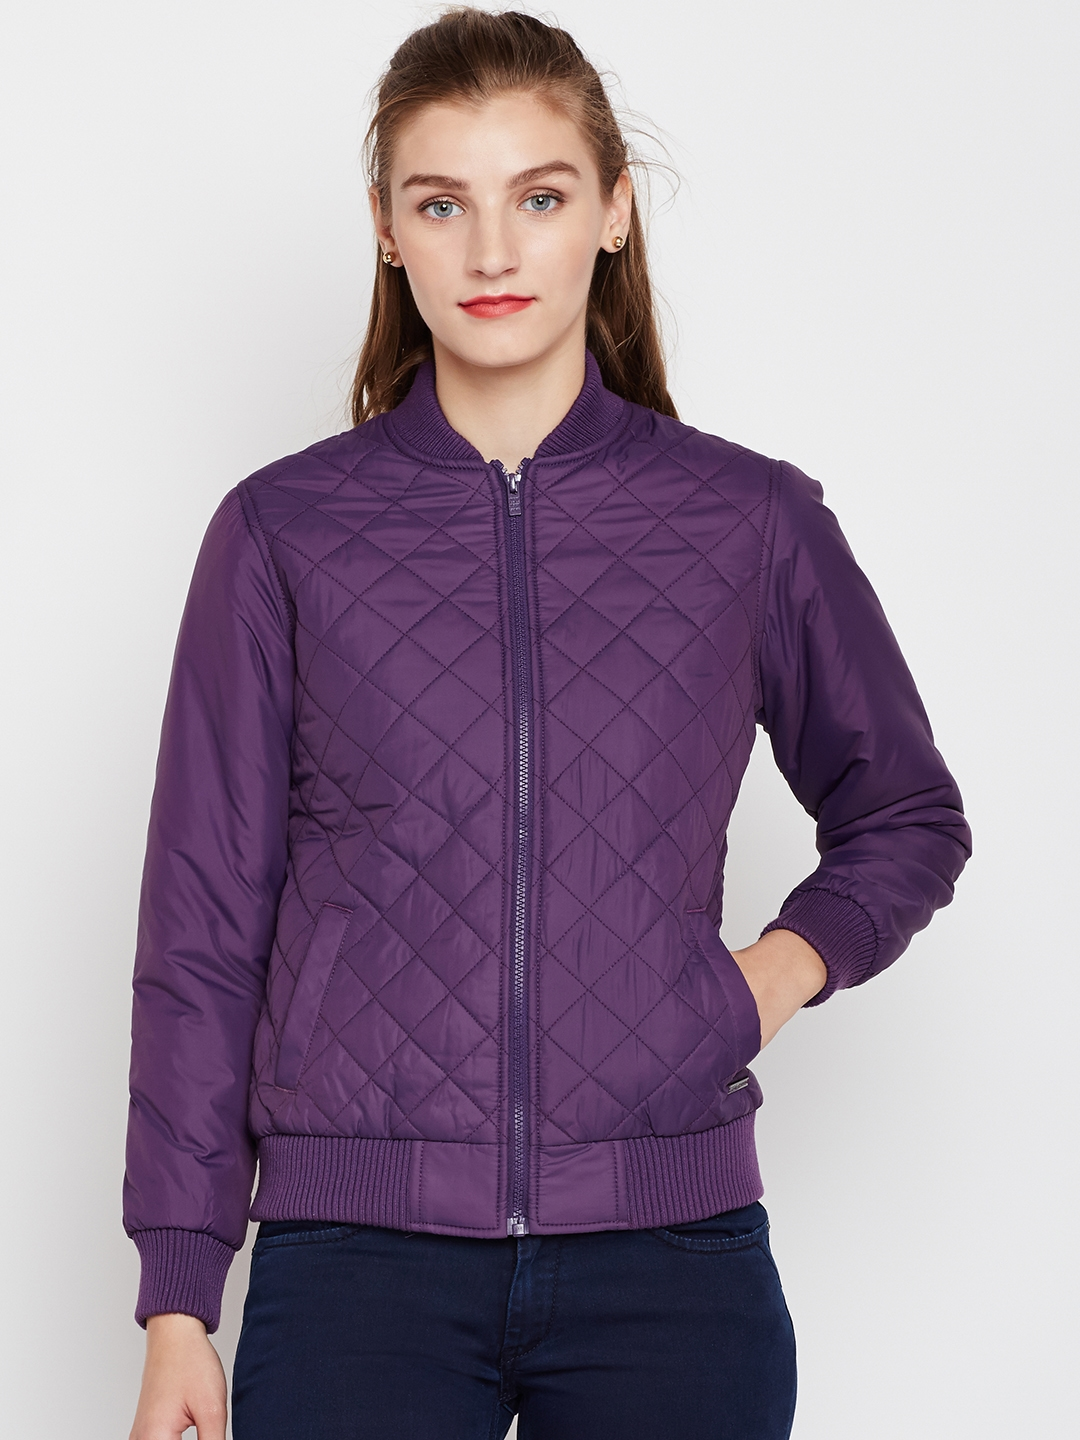 009bd26fdaa Pepe Jeans Women Purple Solid Quilted Jacket Jackets For